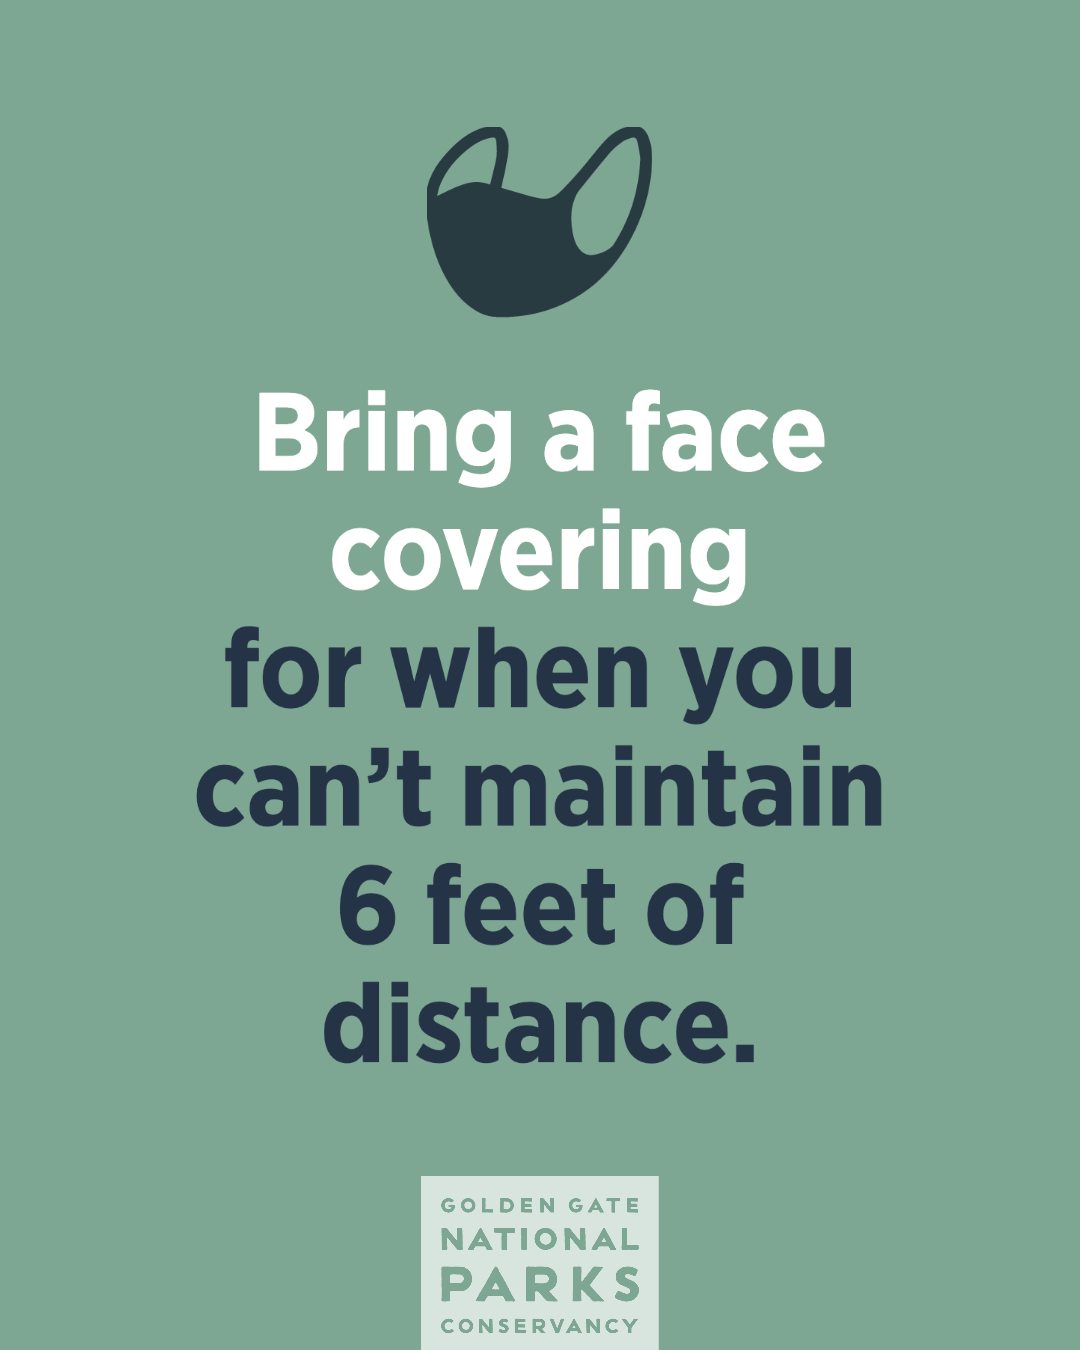 Bring a face covering for when you can't maintain 6 feet of distance